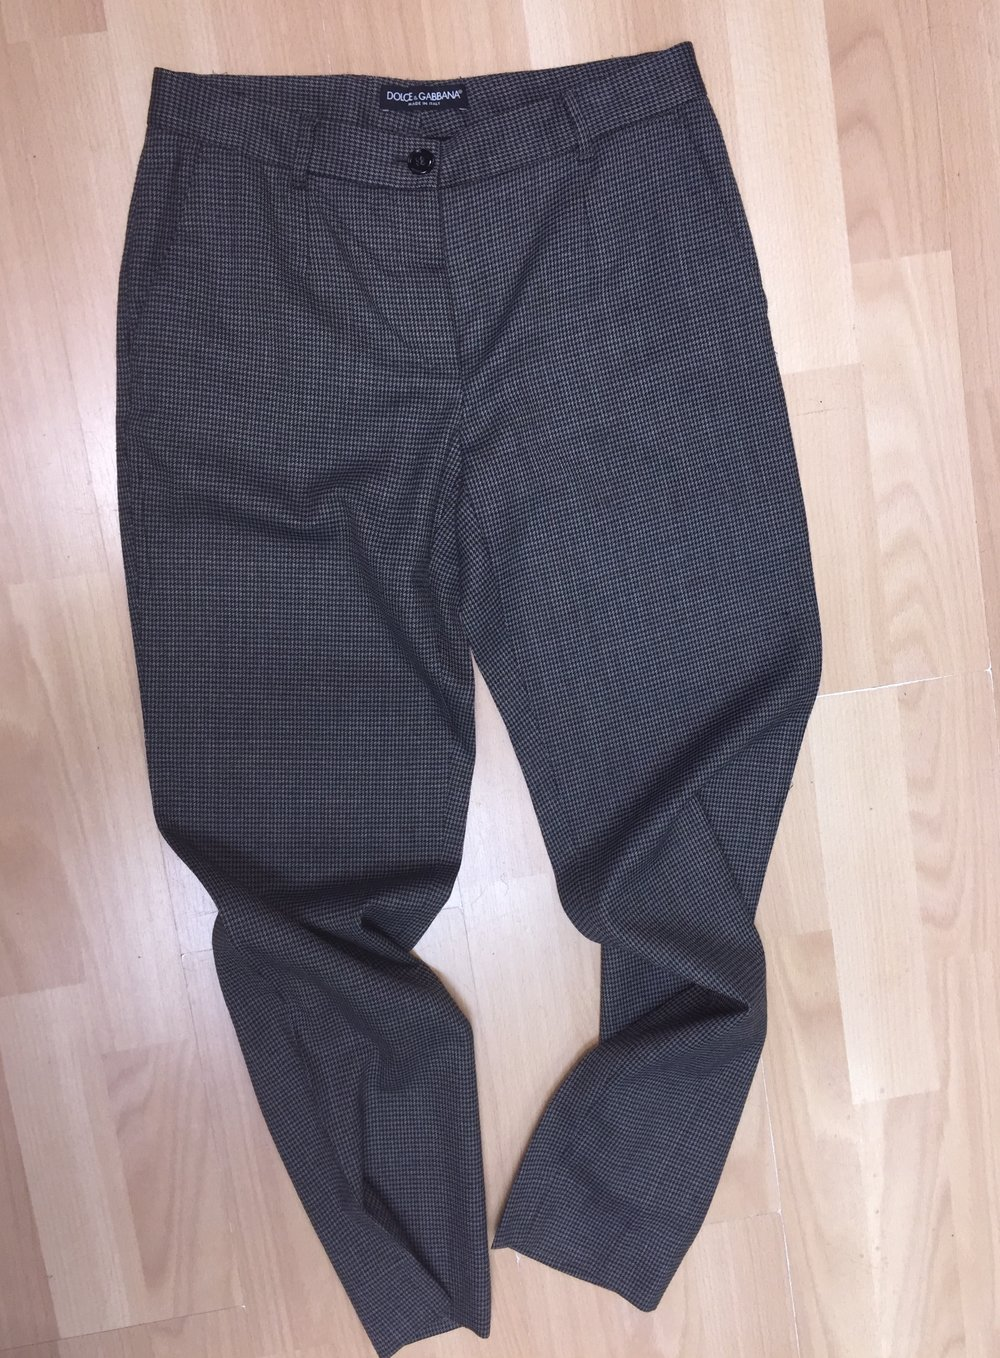 DOLCE & GABBANA - Grey, charcoal and black wool pants, size 6/8. $77.00